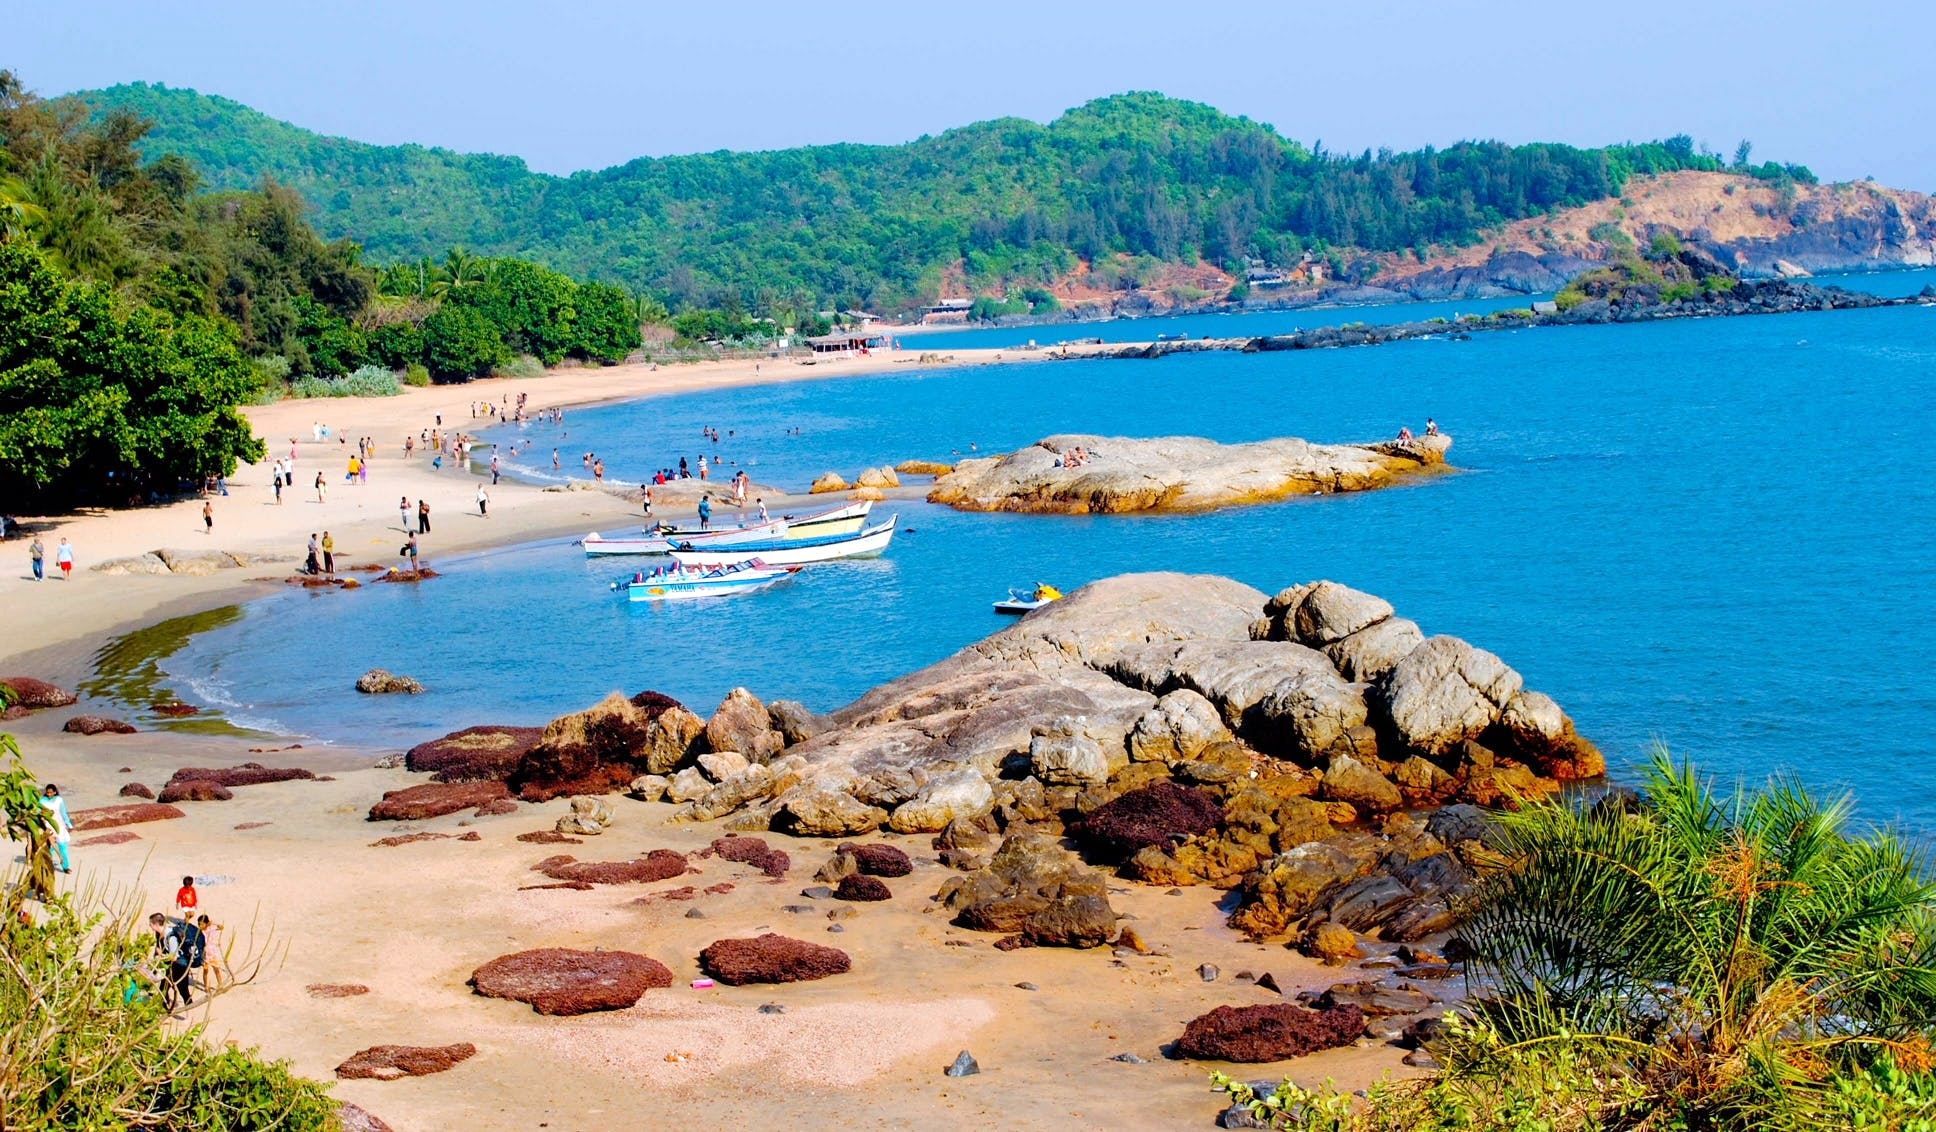 Beach, Please! Ditch Goa And Head To This Hidden Paradise